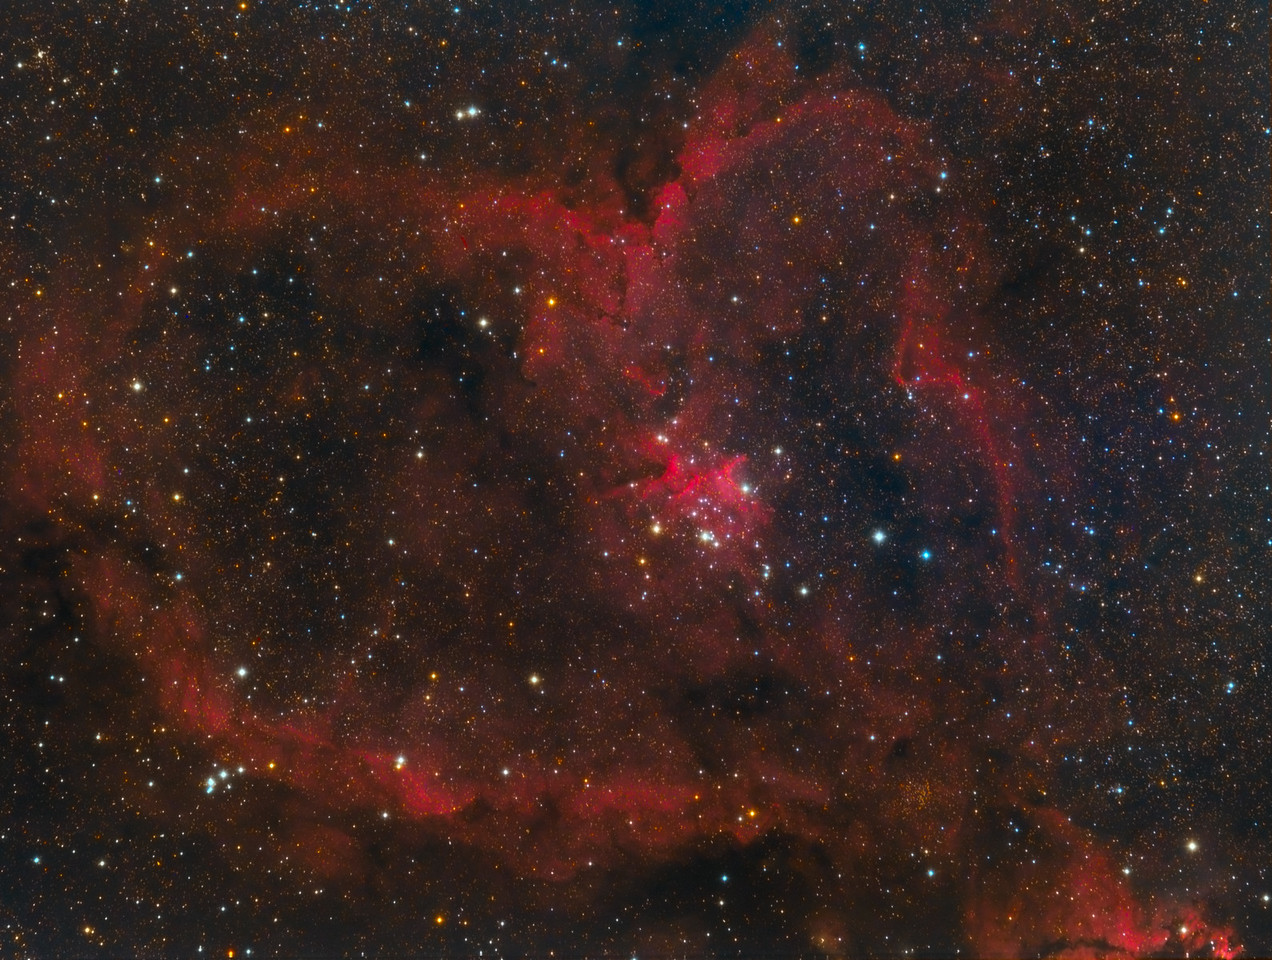 The Heart Nebula - IC 1805